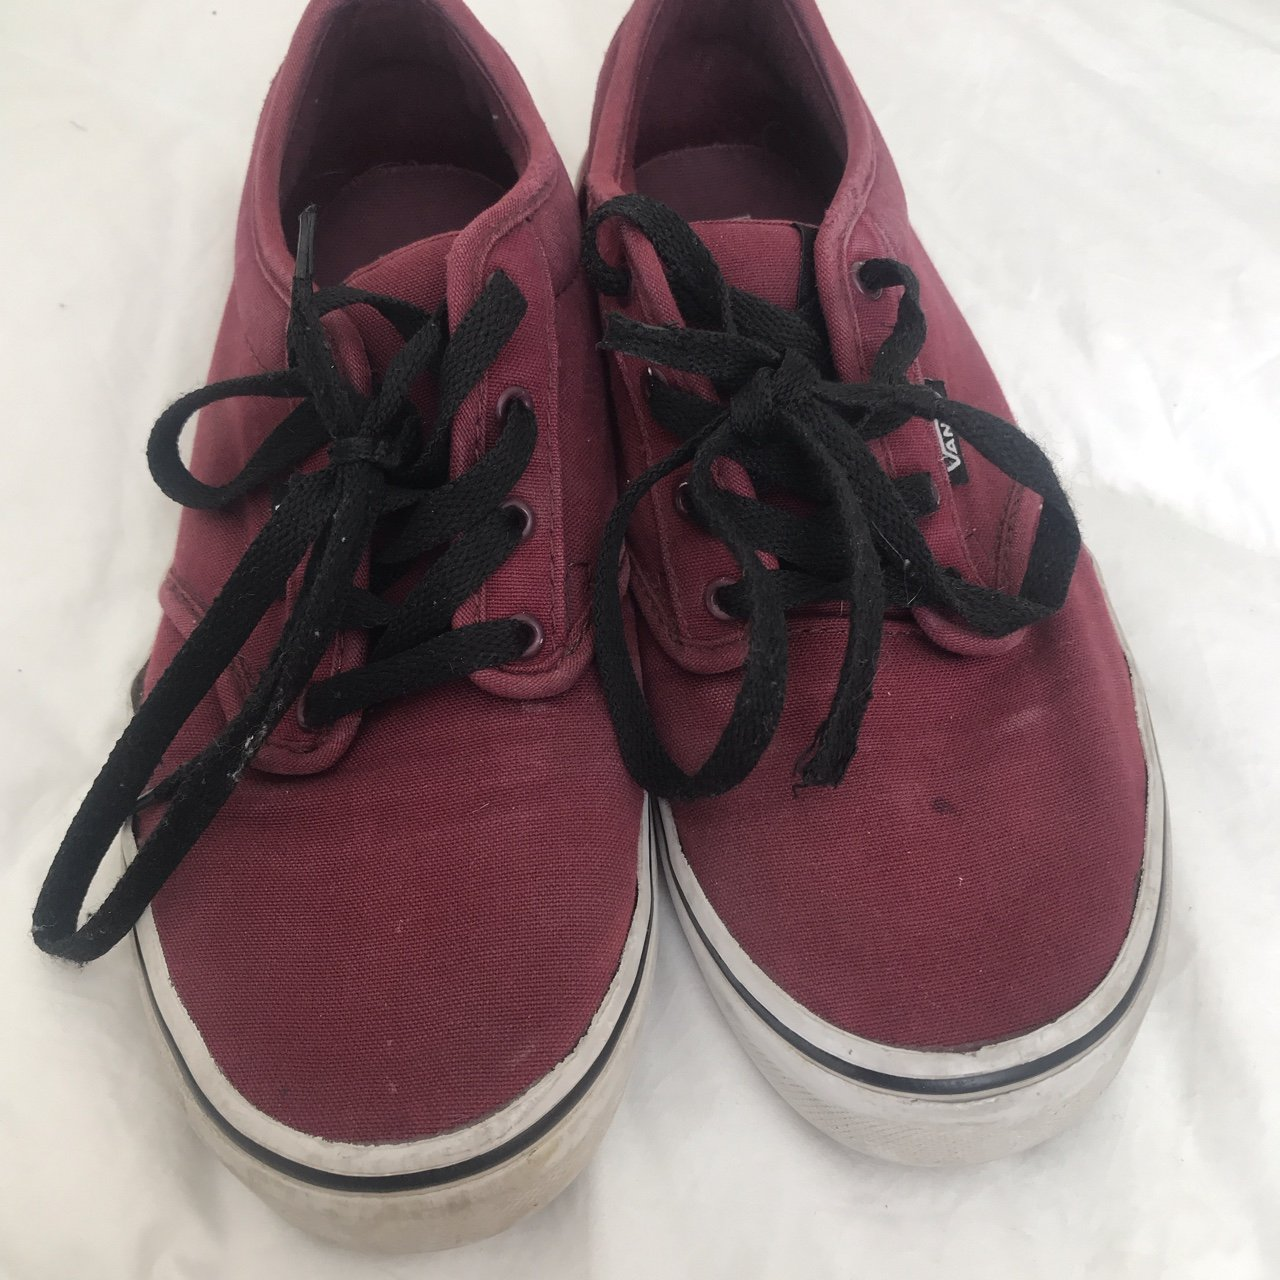 9a8042860481 @notshopco. 3 months ago. Murray, United States. maroon low top vans ...